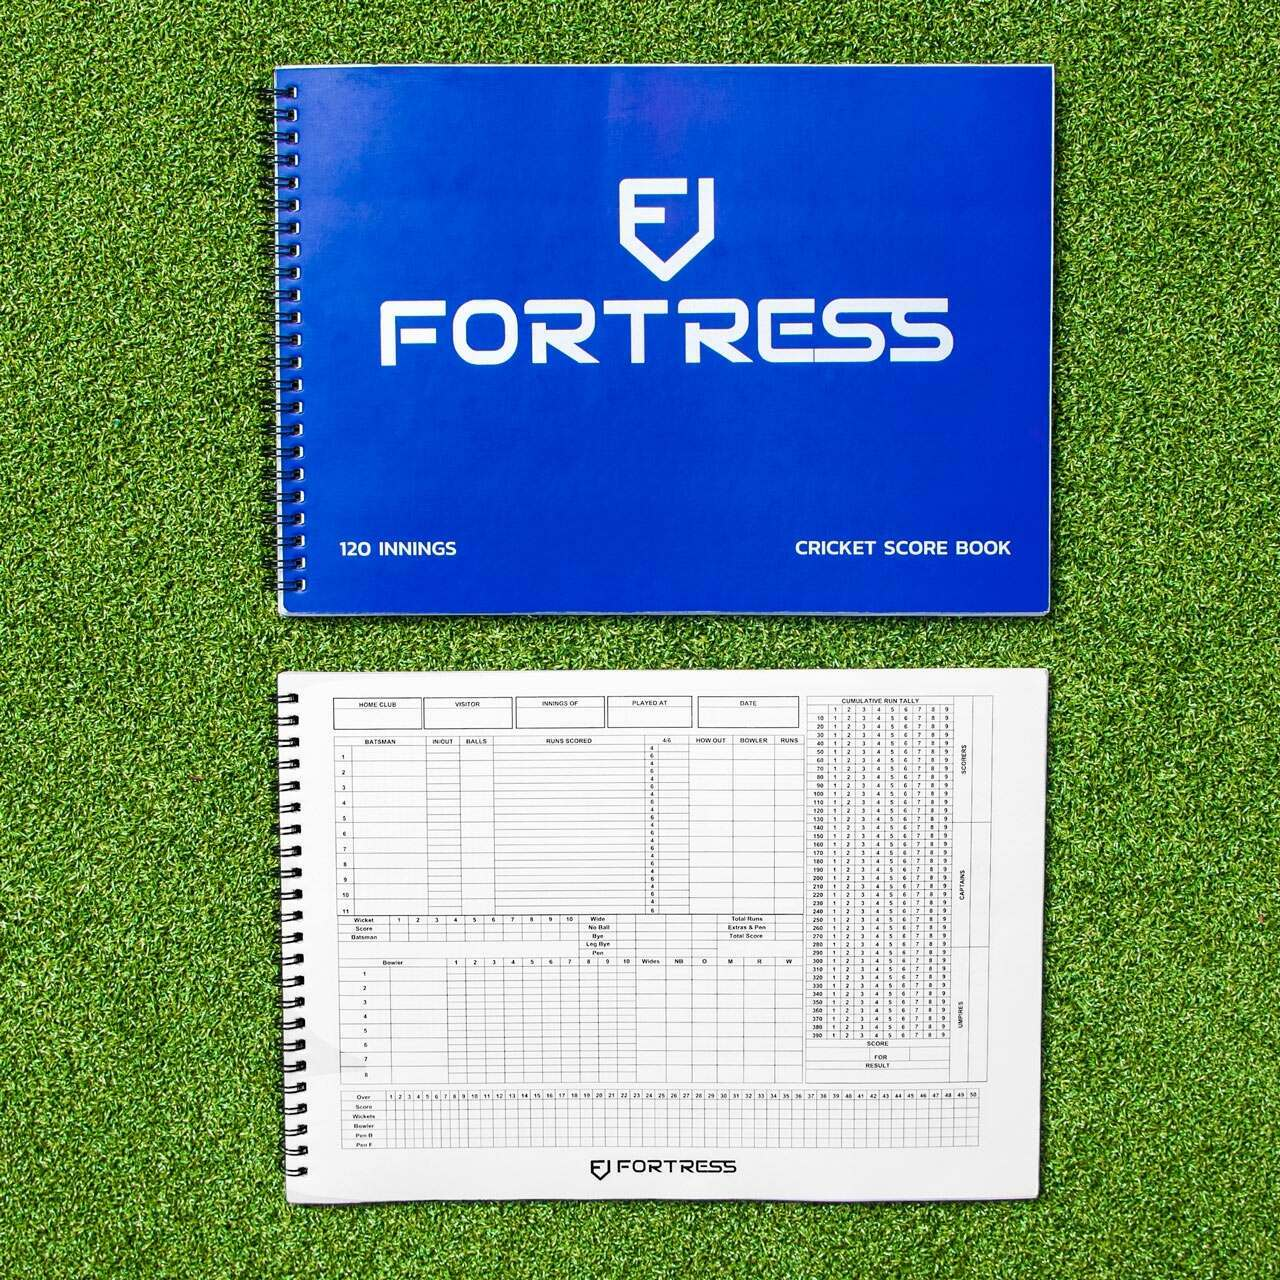 FORTRESS Cricket Scorebook